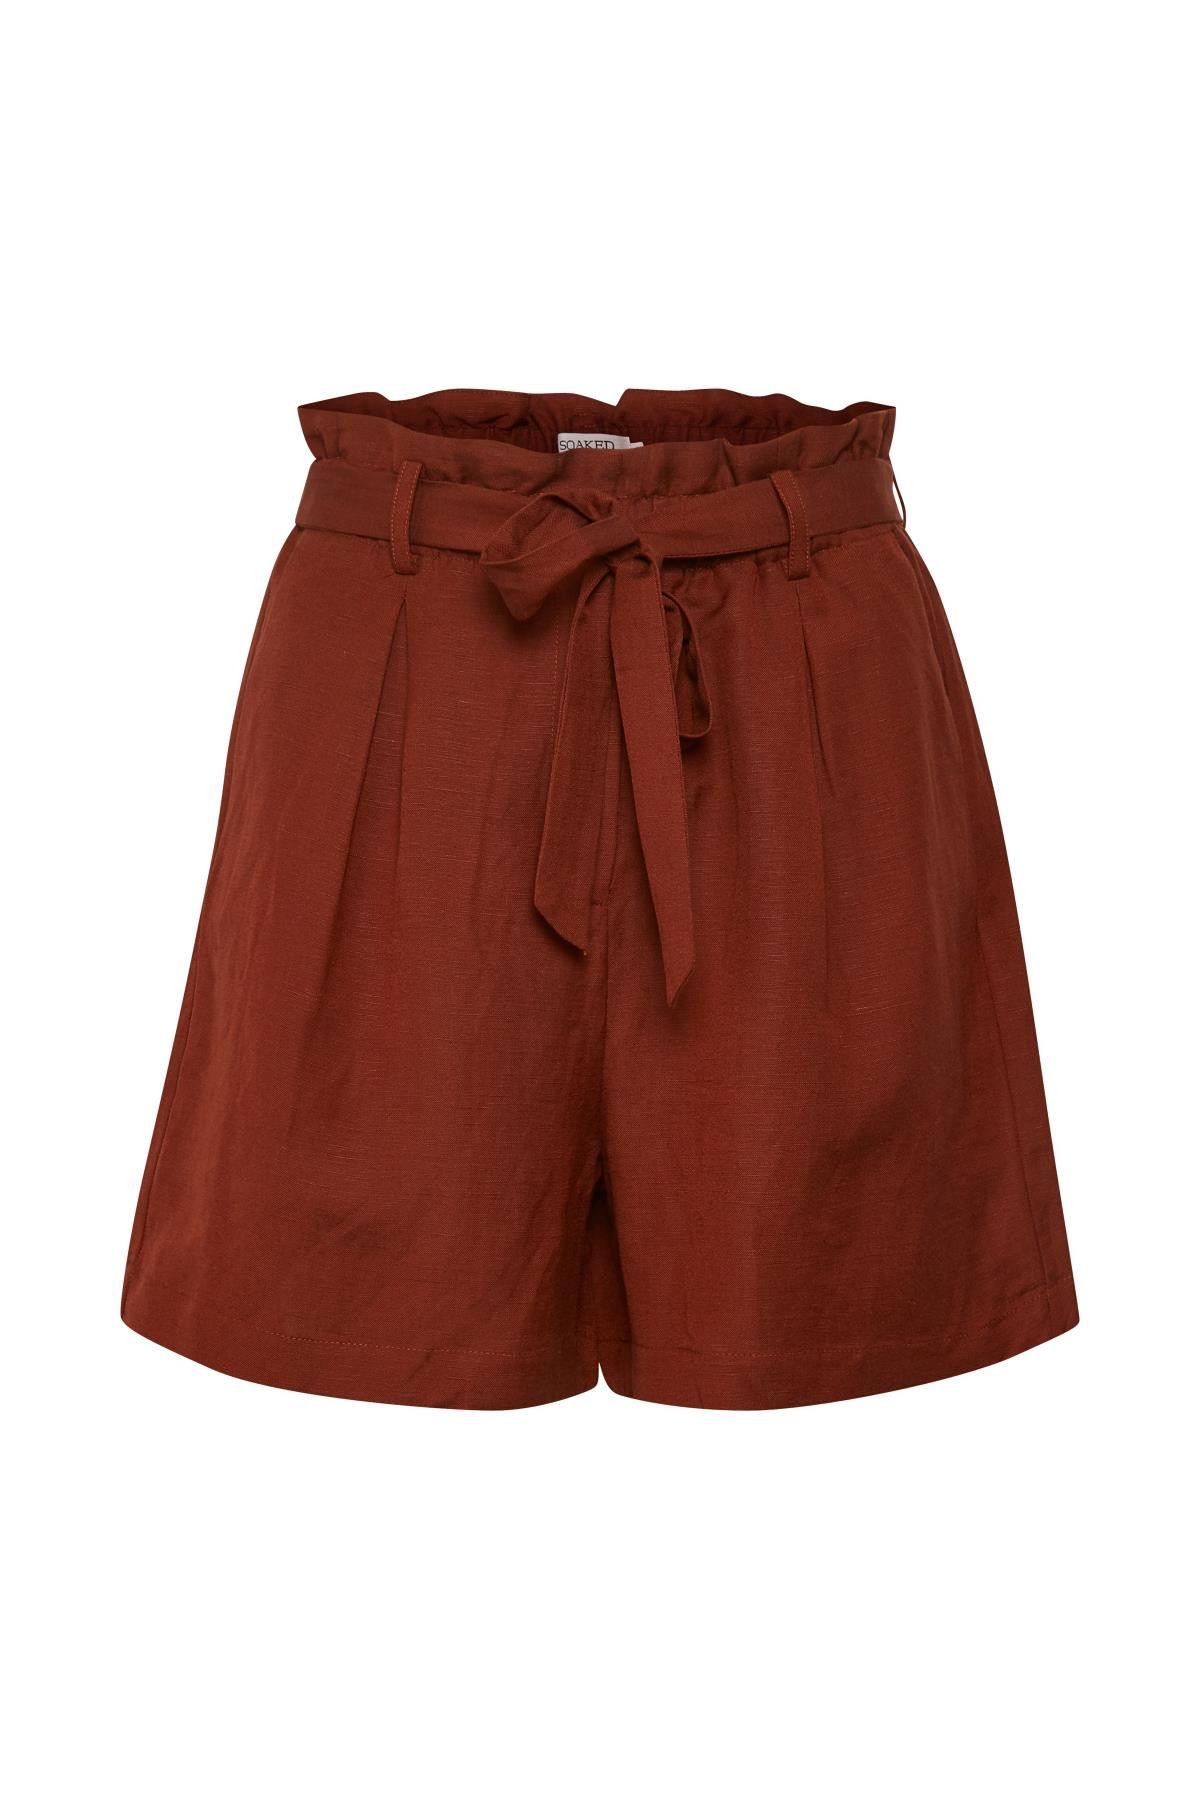 Image of   SOAKED IN LUXURY SL FAYETTE SHORTS 30404040 (Fired Brick 47021, XS)